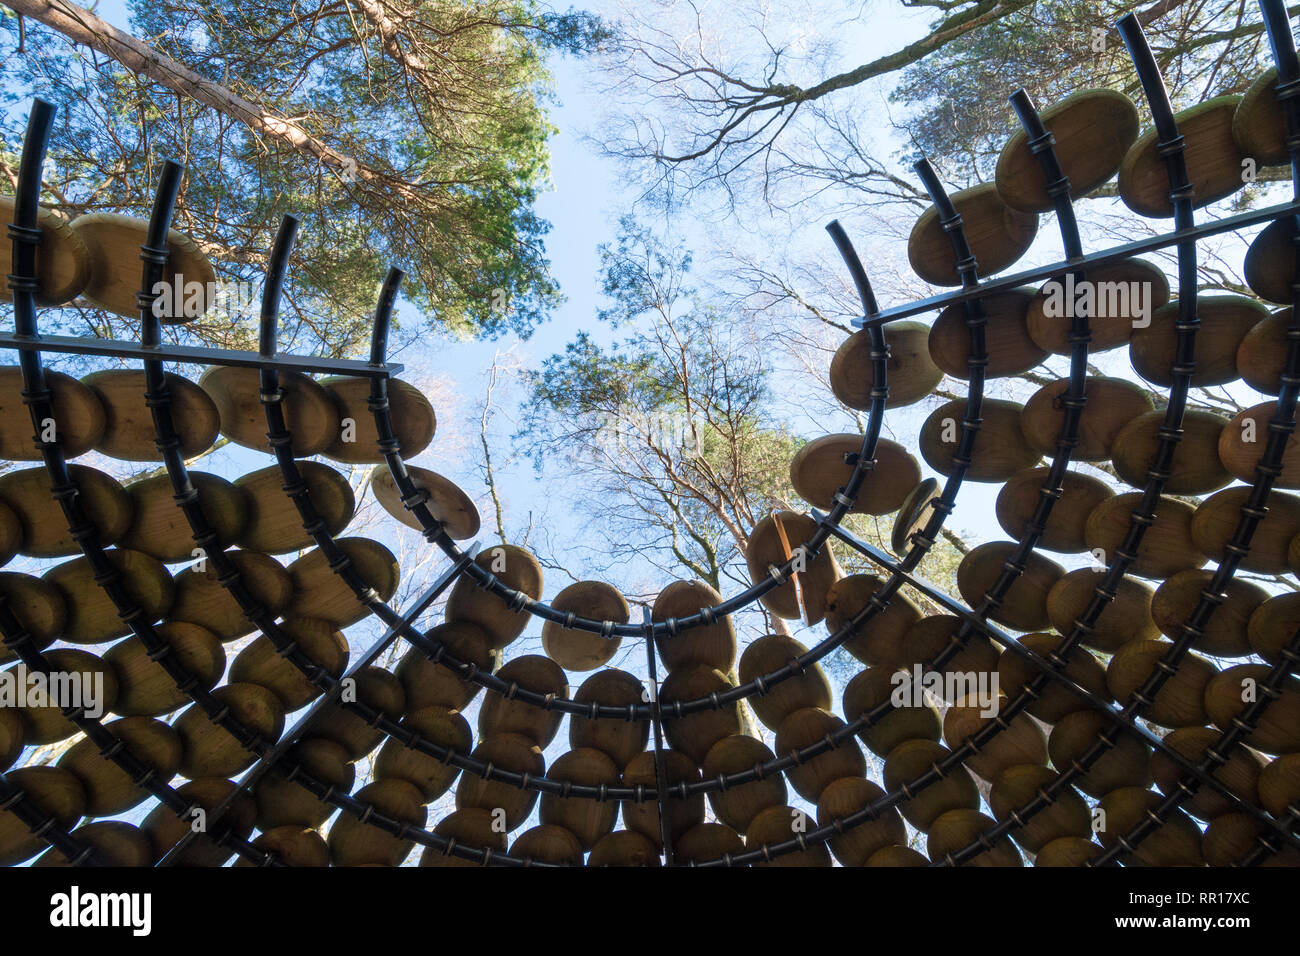 Art installation called Perspectives by Giles Miller in The Hurtwood in the Surrey Hills Area of Outstanding Natural Beauty, UK. Seated pavilion. - Stock Image